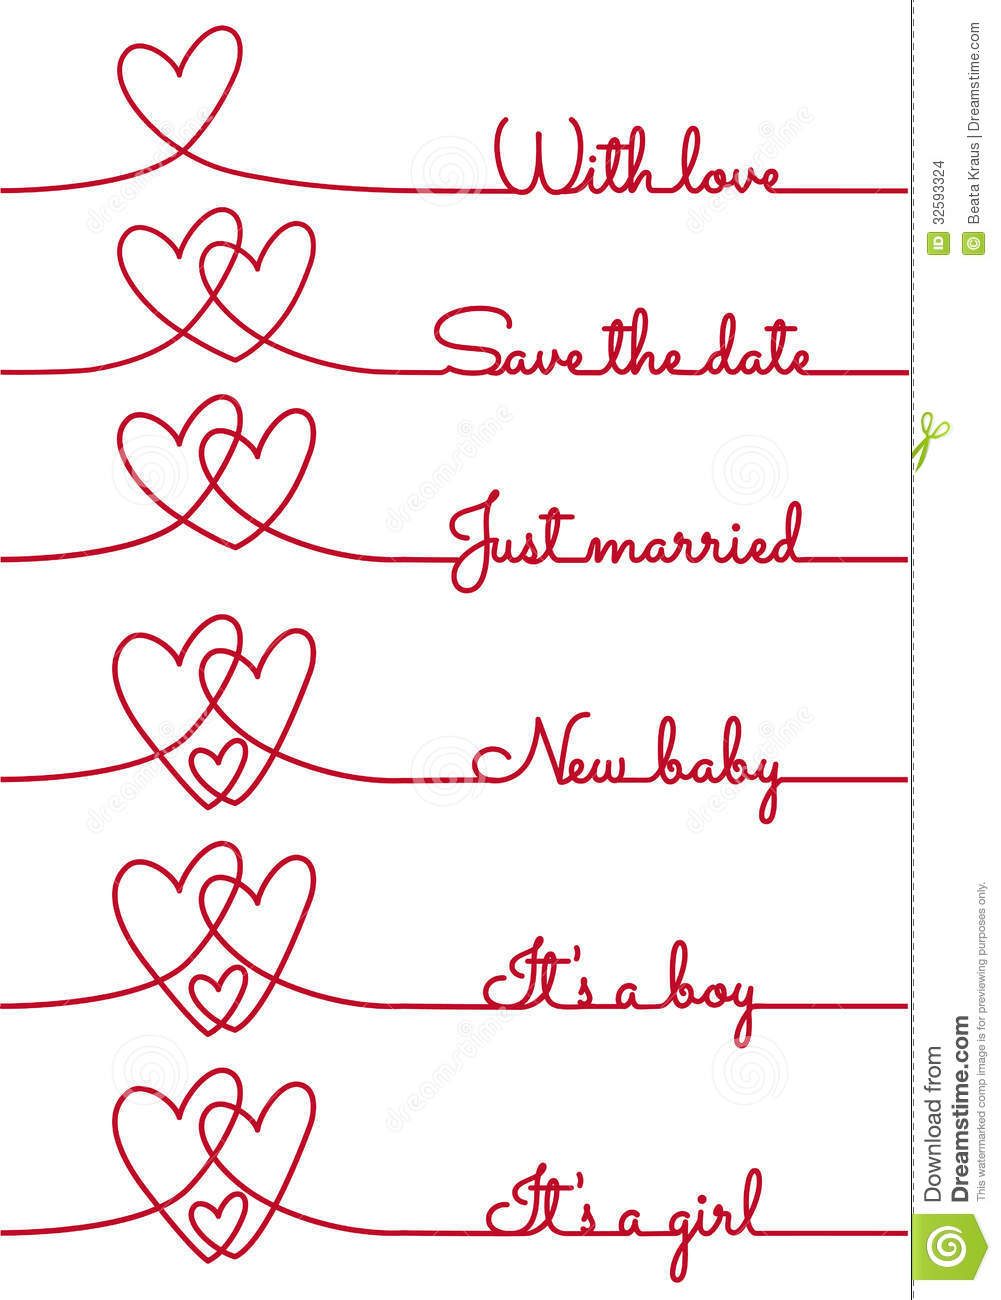 heart line drawing with text for cards vector stock vector